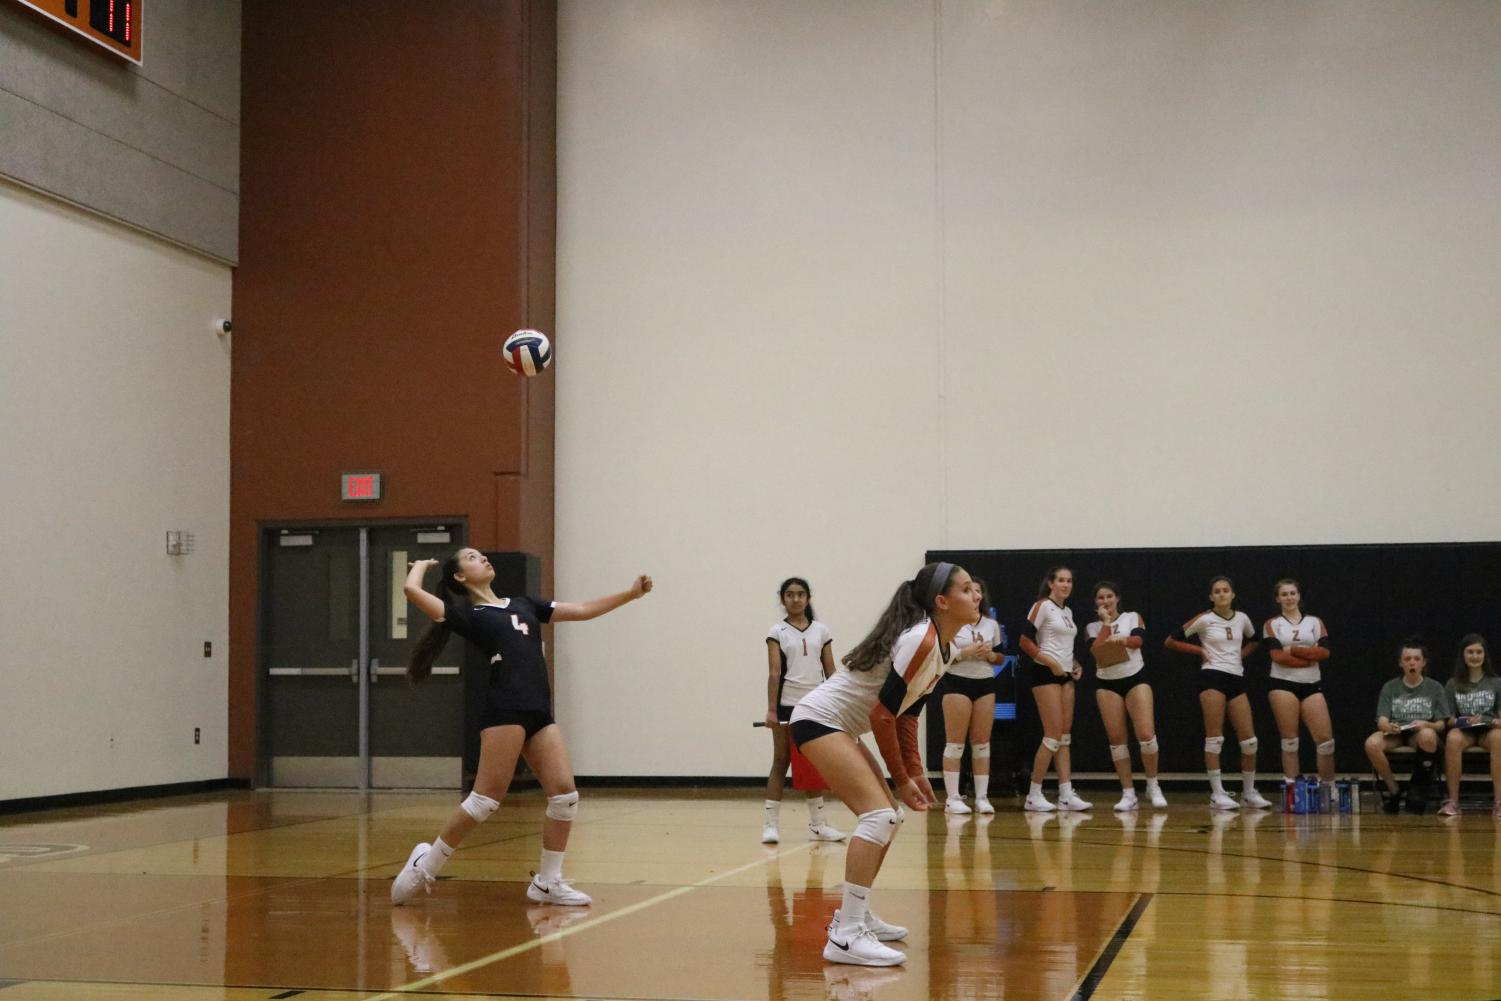 Izzy+Correll+%2722+serves+the+ball+to+the+opposing+team.+